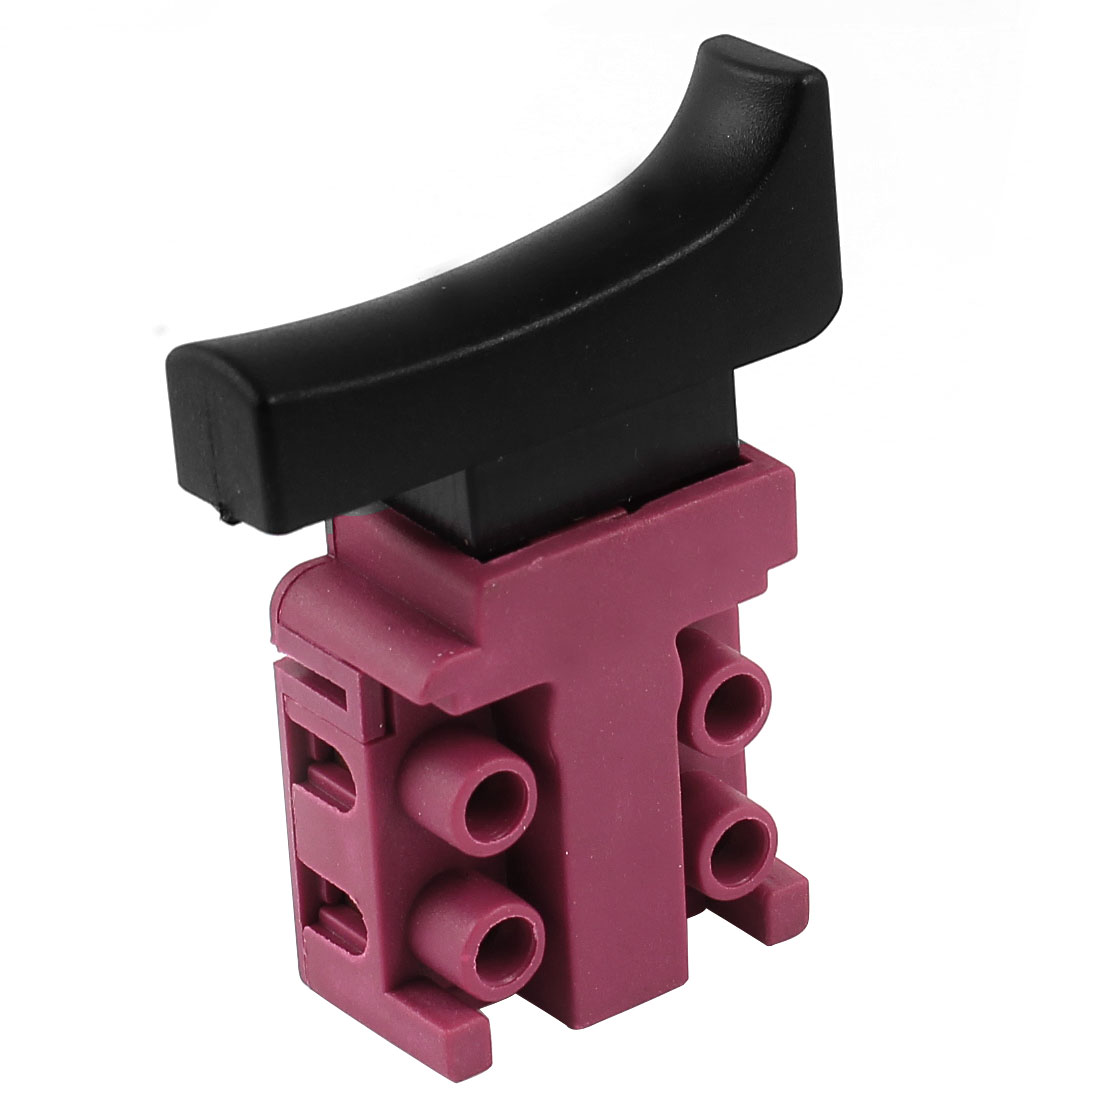 AC 250V 6A DPST NO Momentary Electric Power Tool Trigger Switch Black Fuchsia